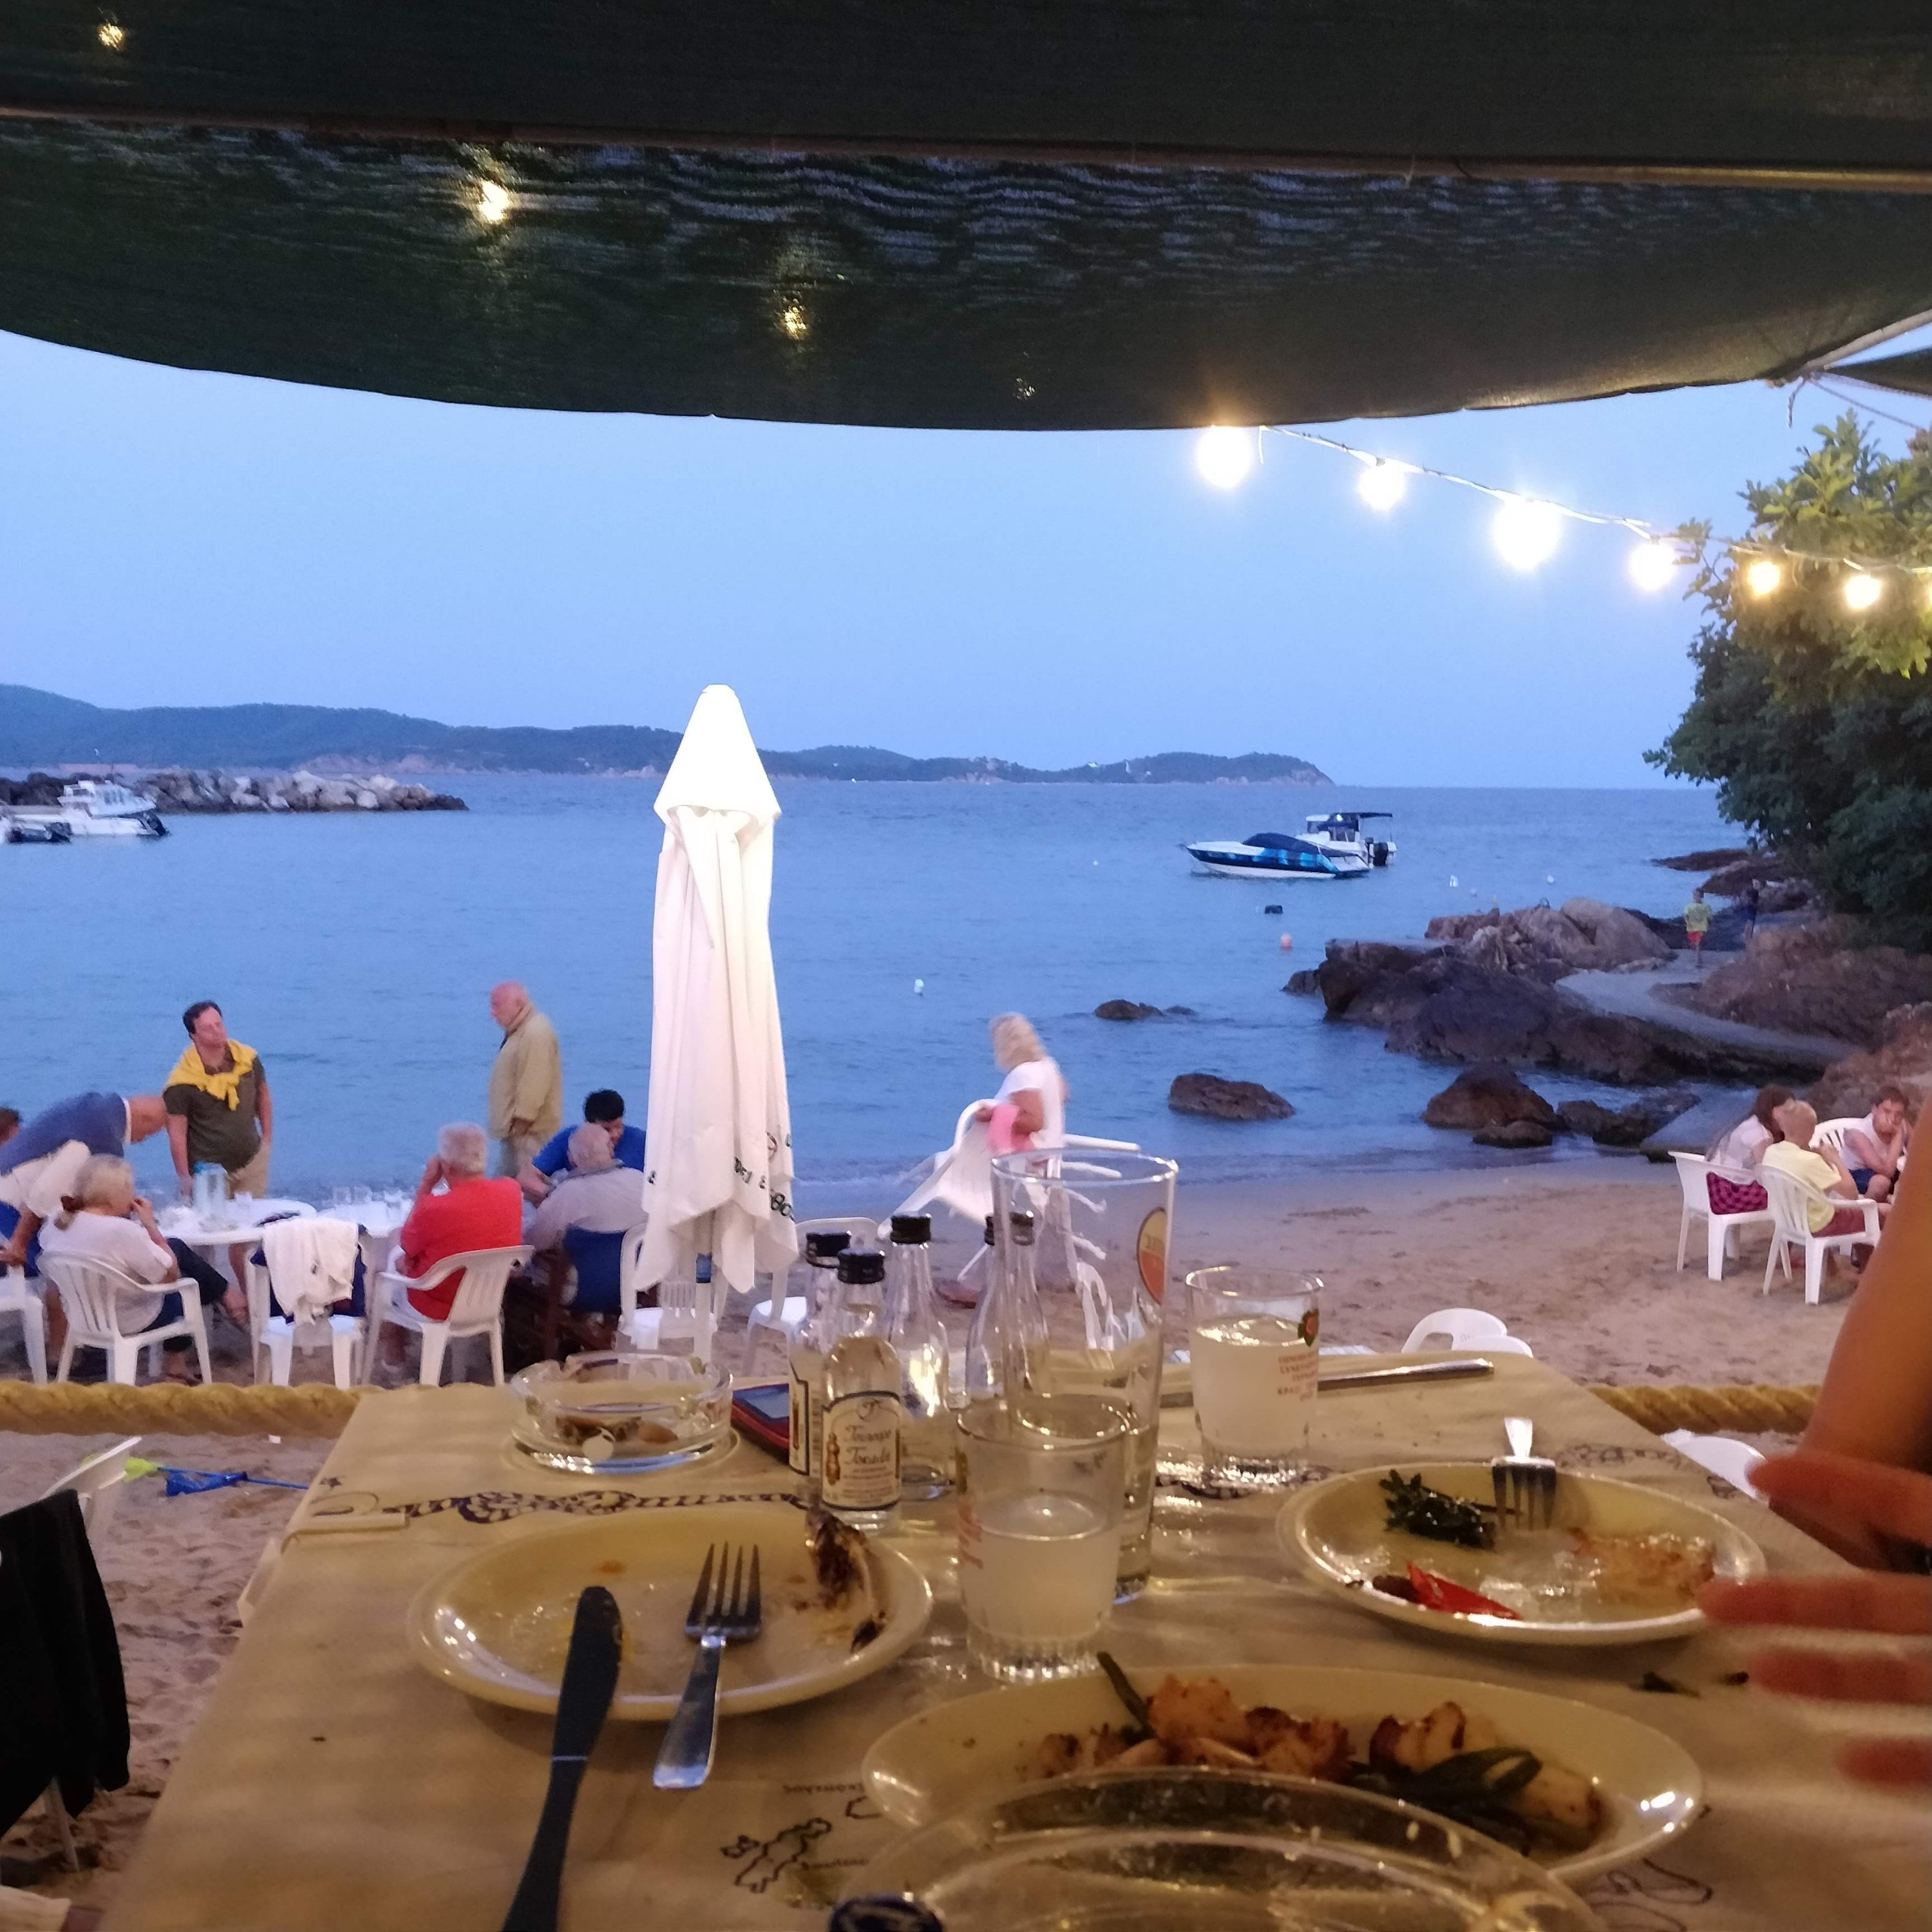 The view from a traditional Greek tavern in the fishing village of Katigiorgis in Southern Pelion Central Greece.